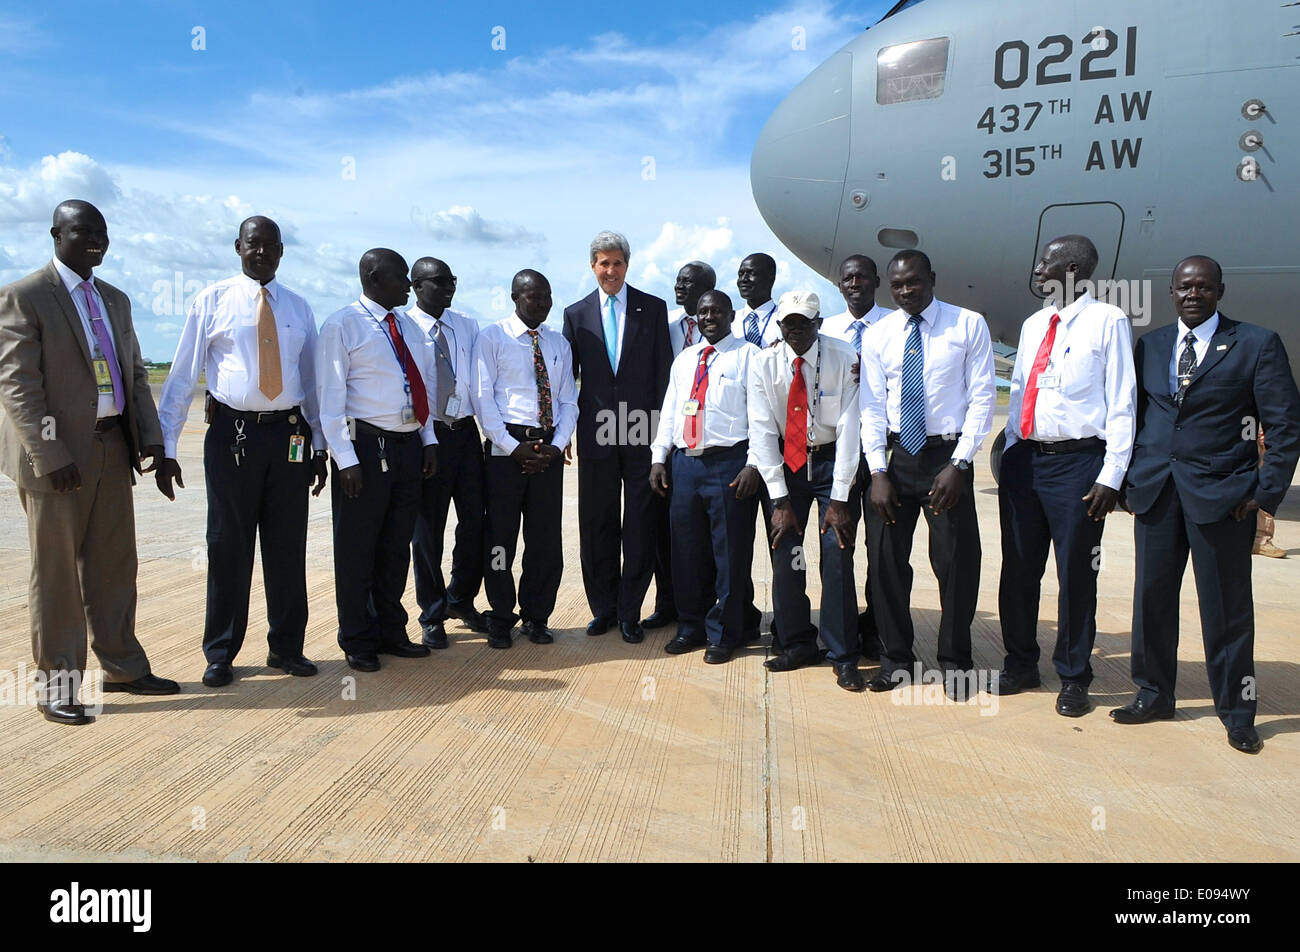 Secretary Kerry Poses With Local Motor Pool Who Drove Him in South Sudan - Stock Image